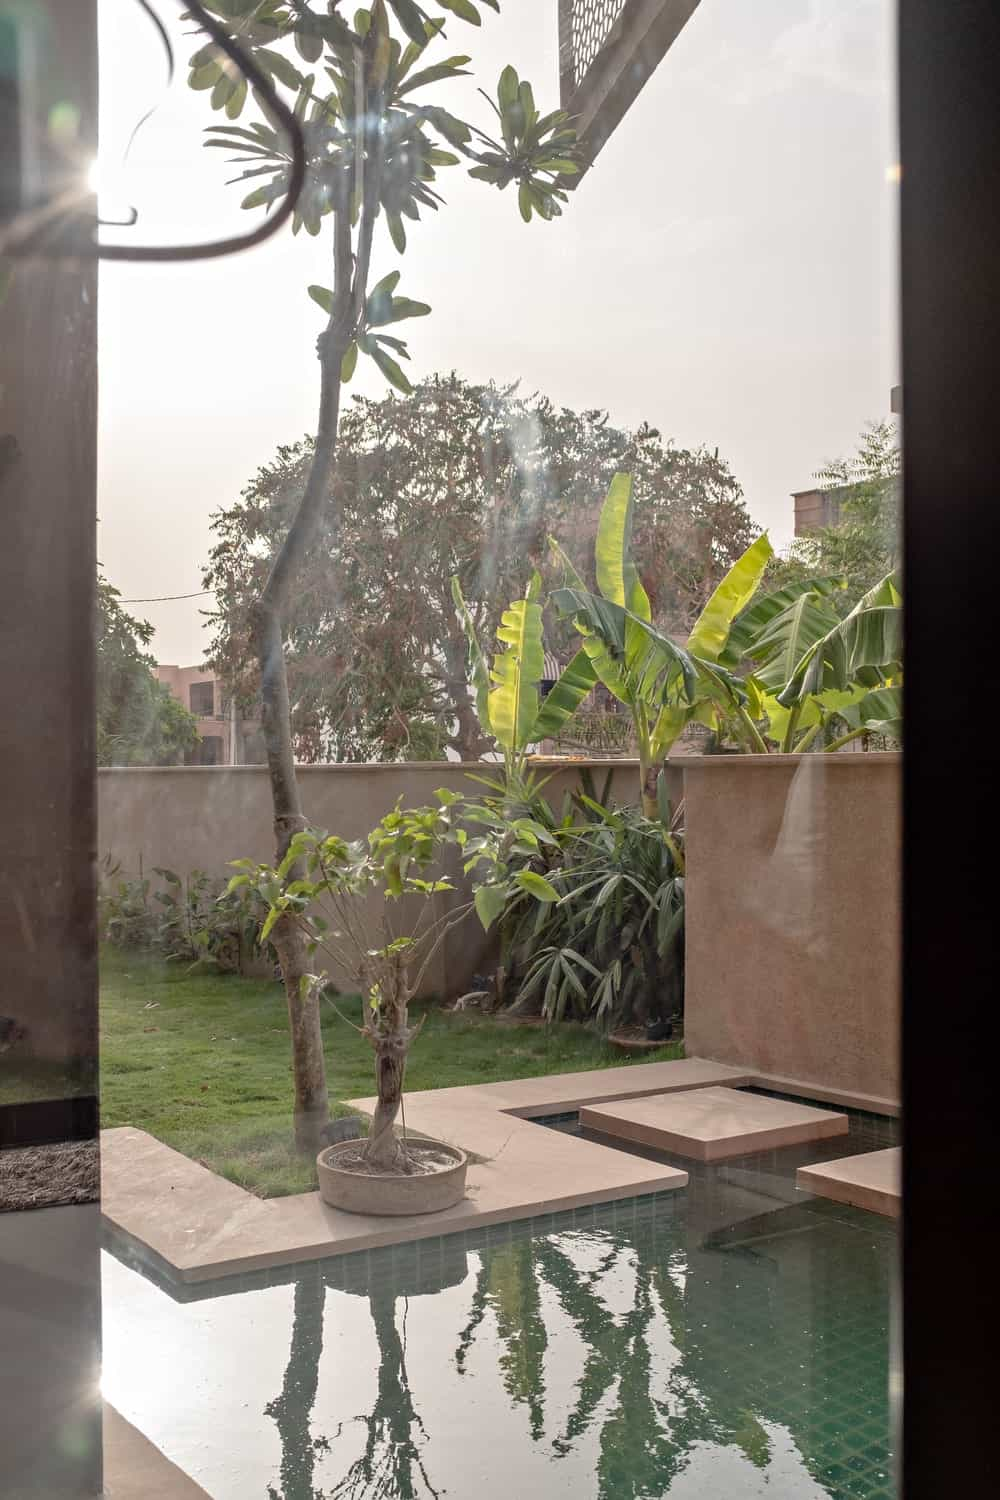 Swimming pool in the Chhavi House during night (Oasis in the Thar Desert) designed by Abraham John Architects.